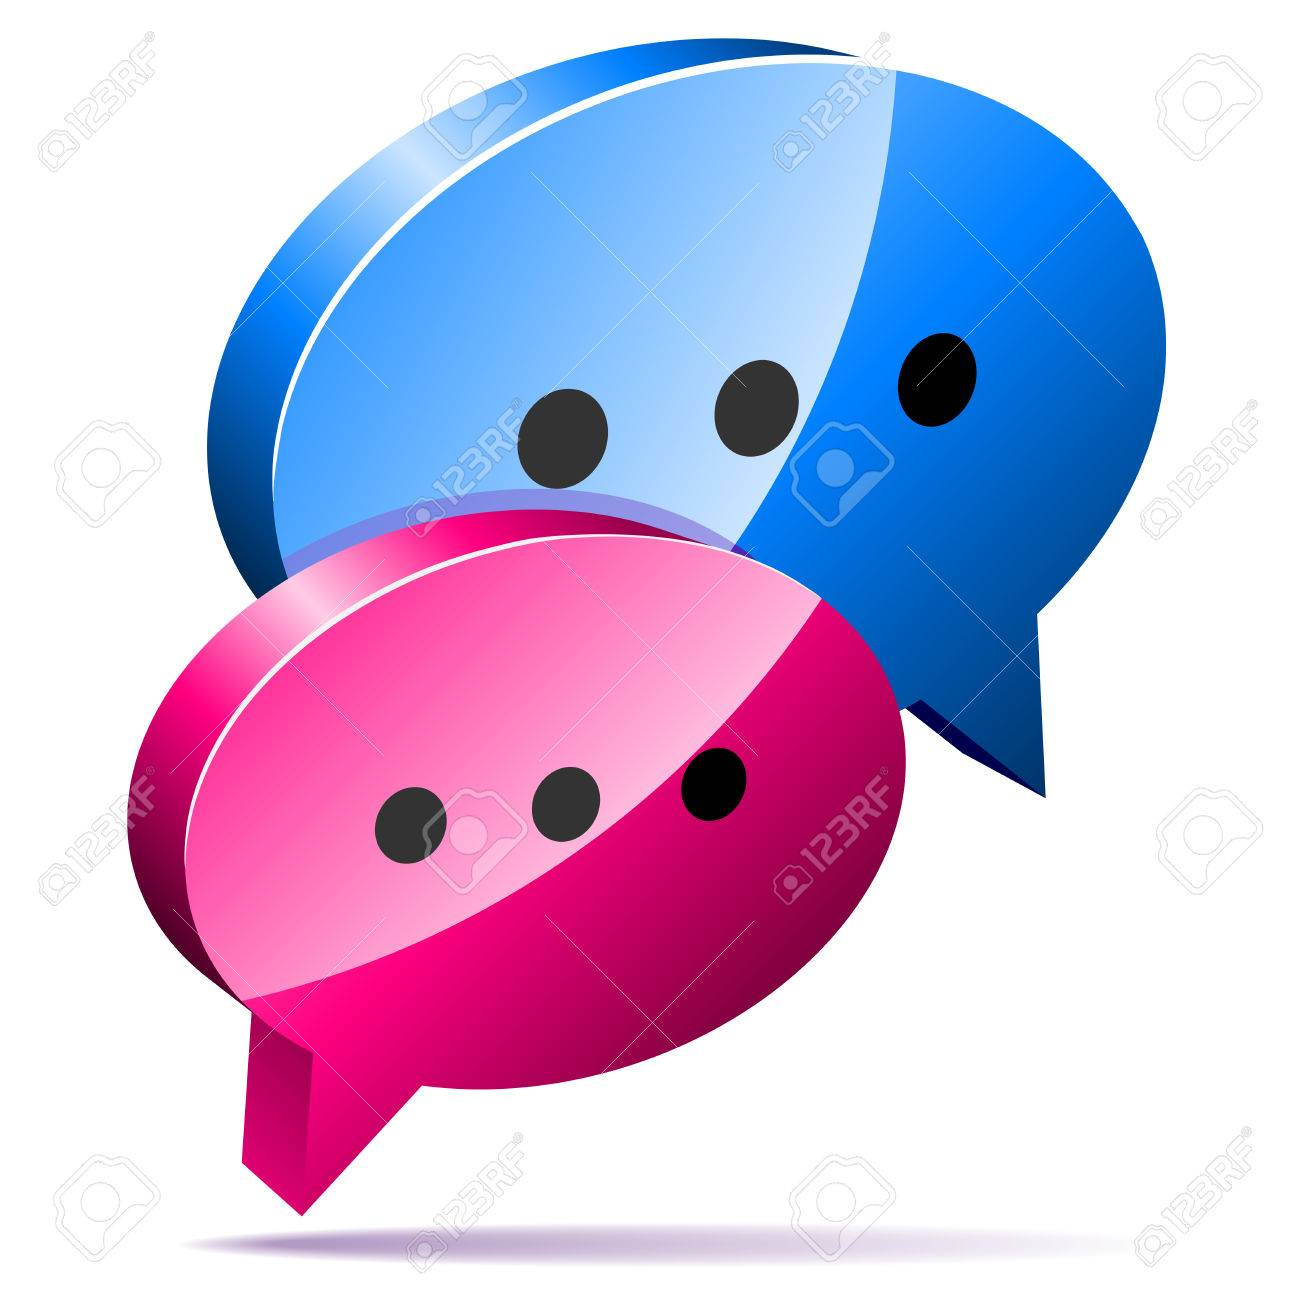 3D speech bubbles. Blog, chat or forum web icon. Stock Vector - 6126244